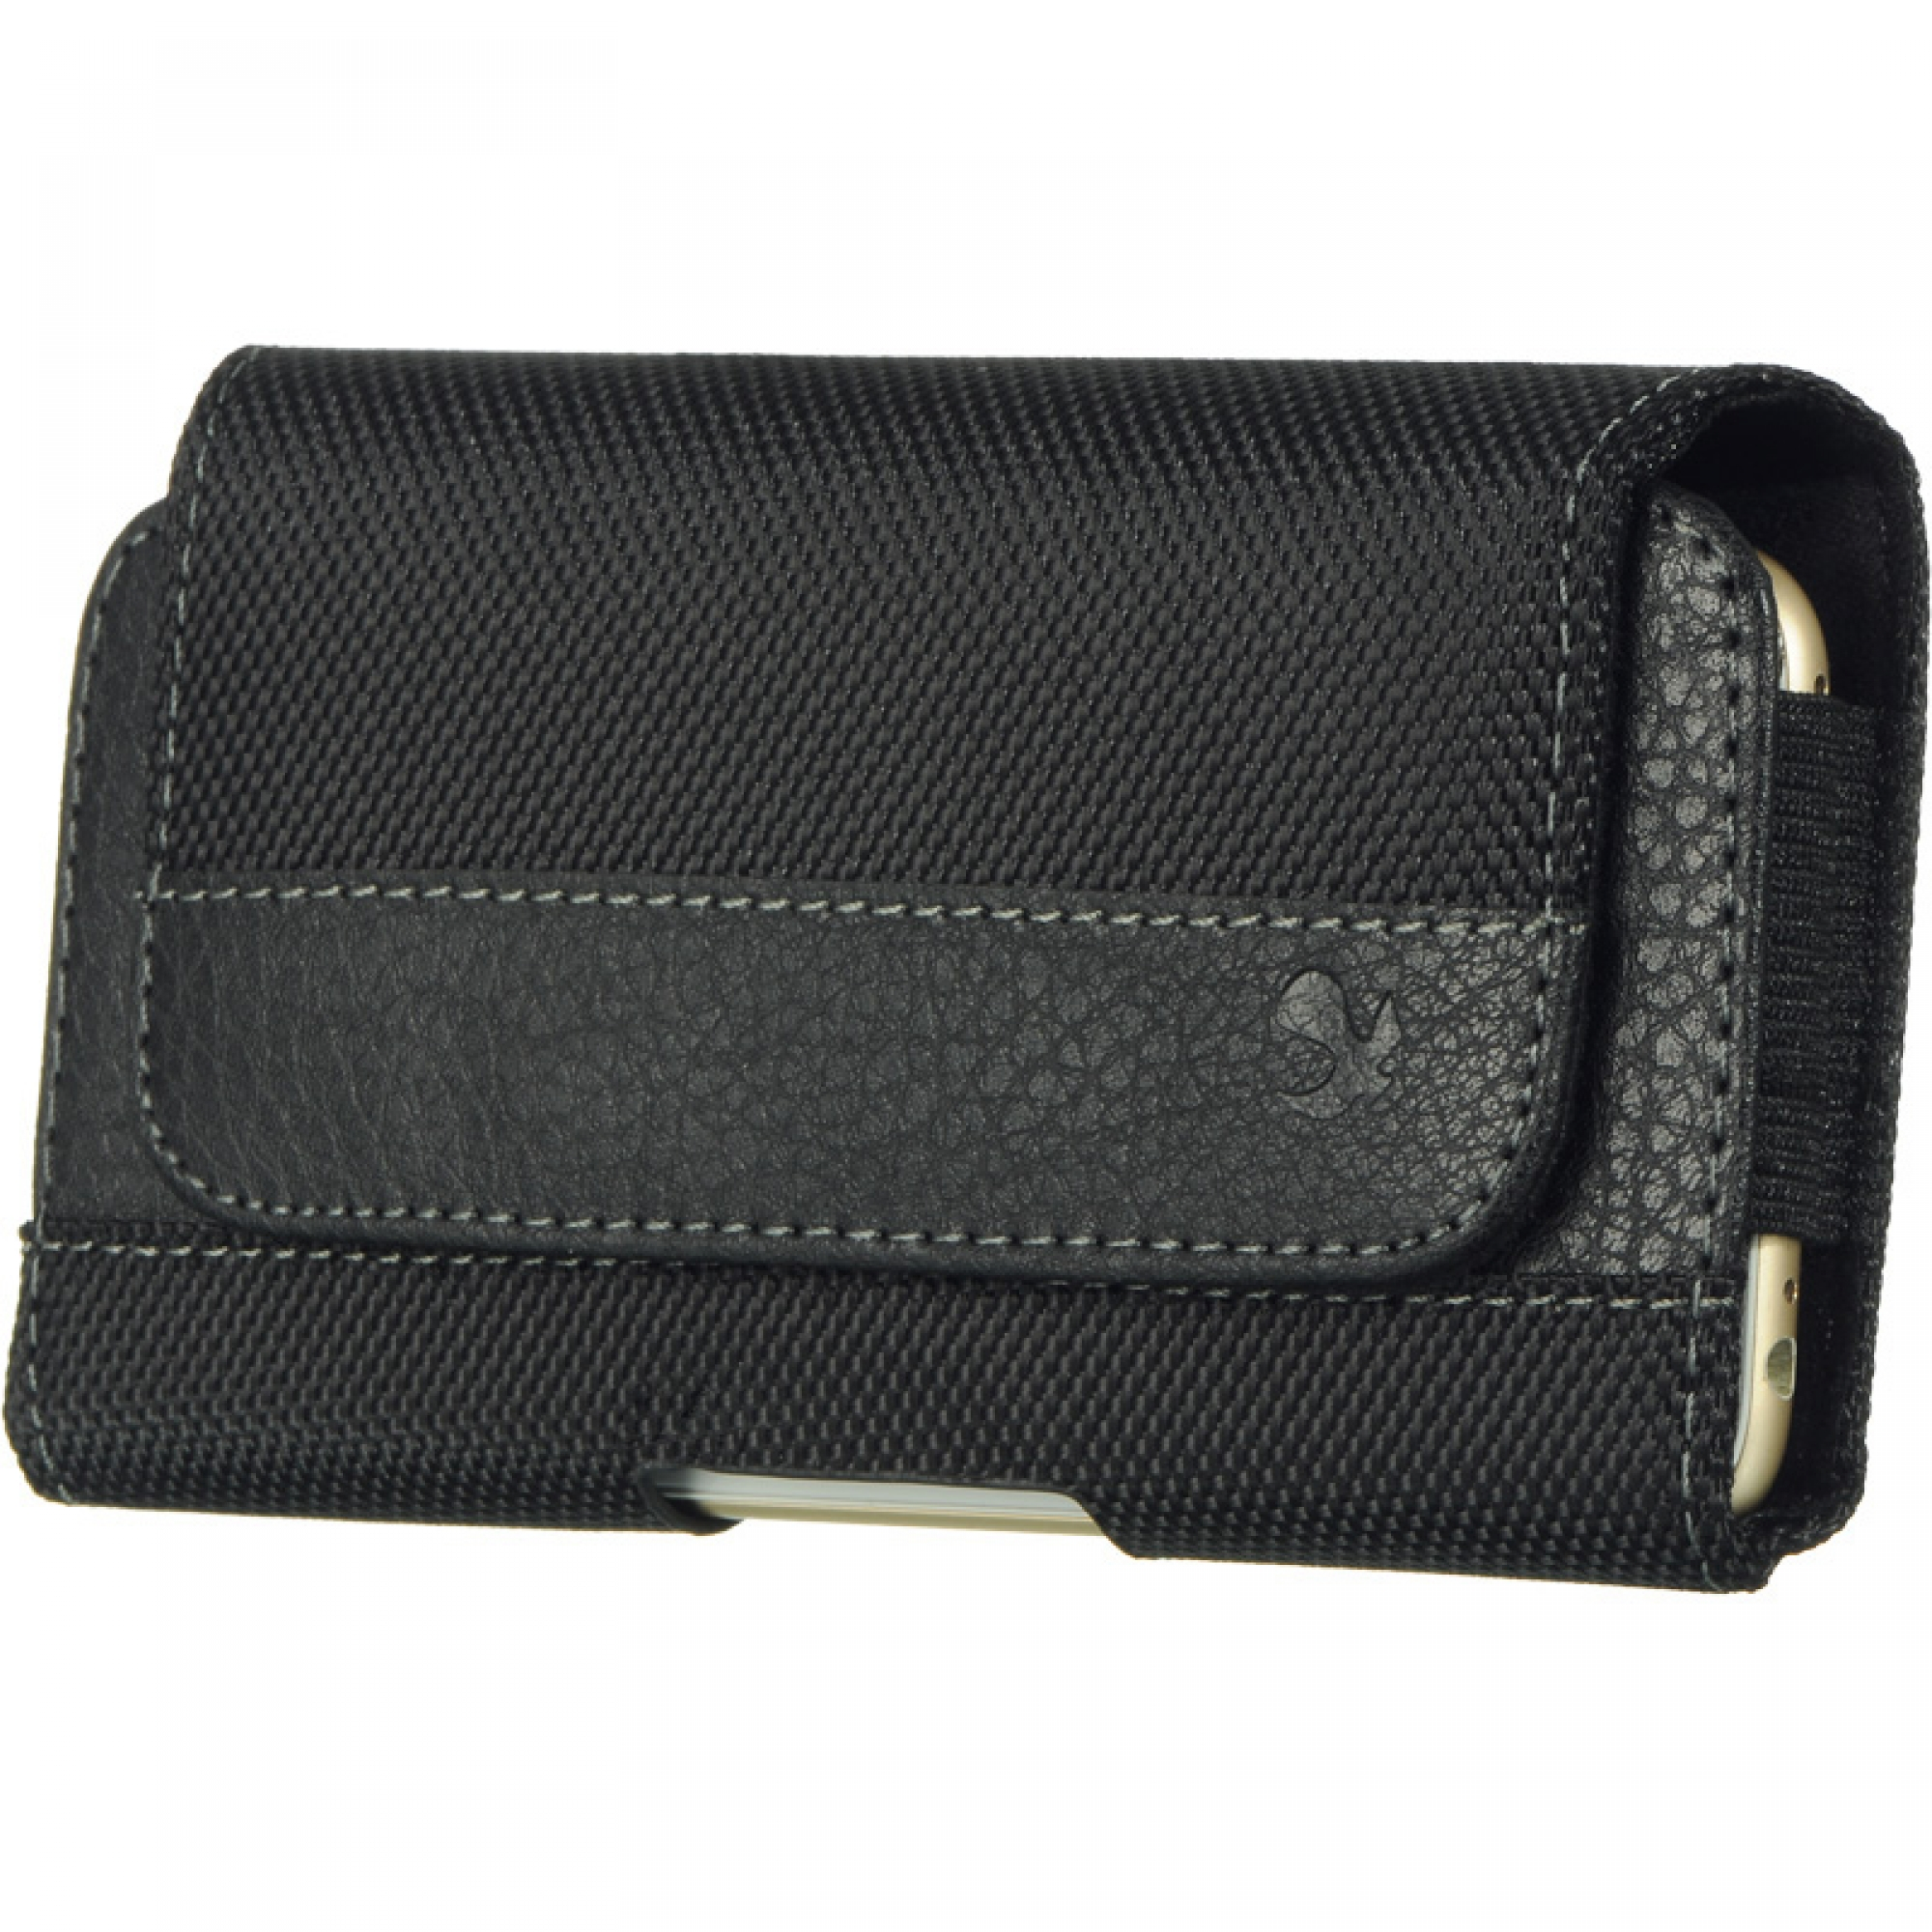 premium belt clip pouch holster leather for cell